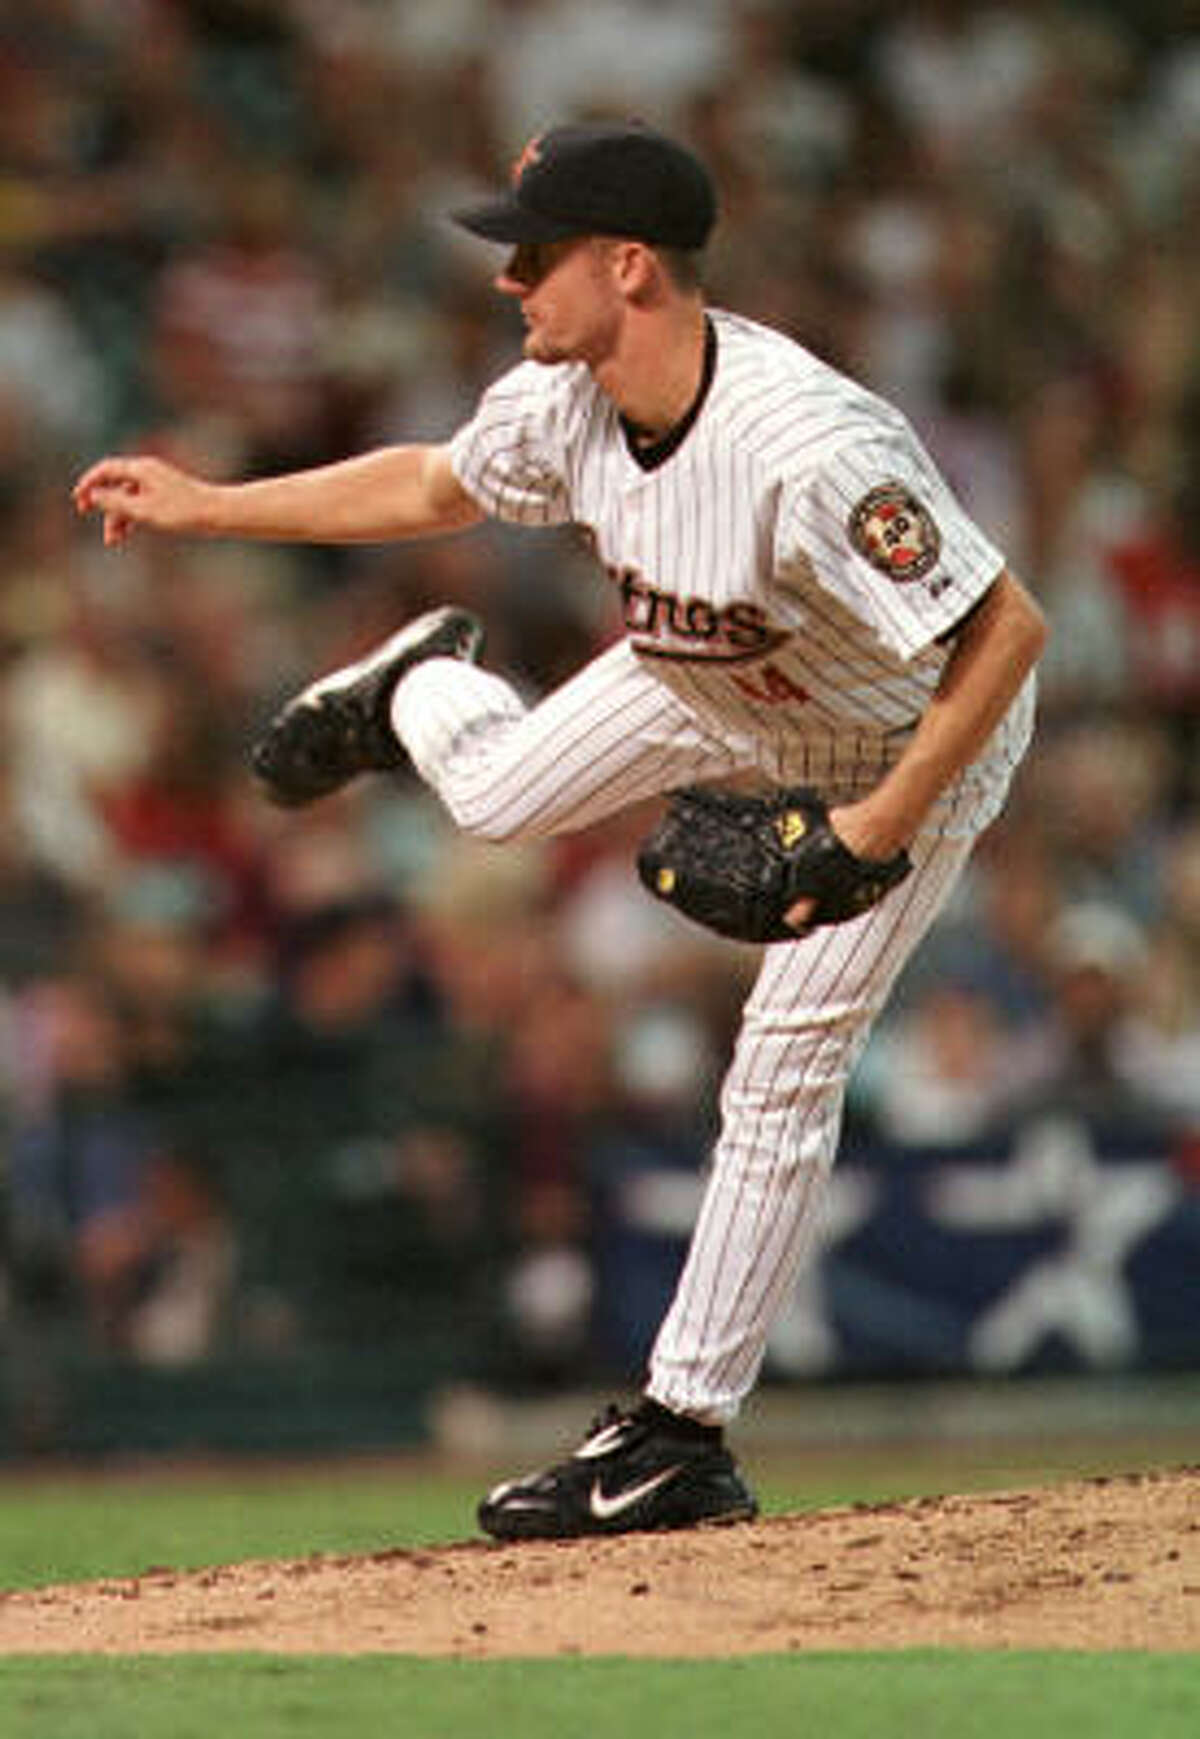 Roy Oswalt set a franchise record for most wins by a rookie (14) and finished second in the voting for National League Rookie of the Year to St. Louis slugger Albert Pujols.